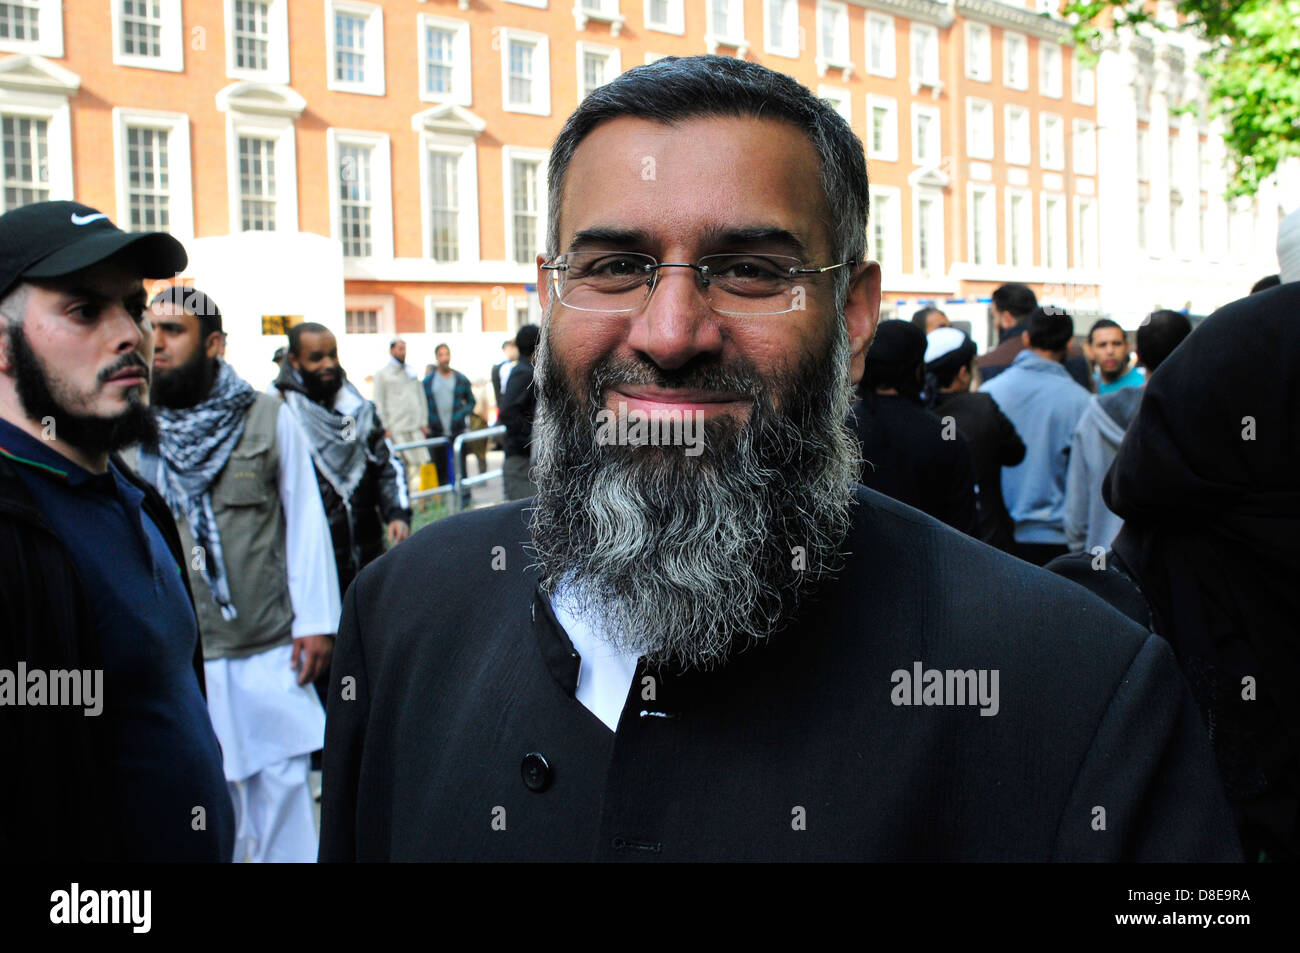 The extremist Islamist Anjem Choudary at a protest outside the US Embassy in London, UK. - Stock Image